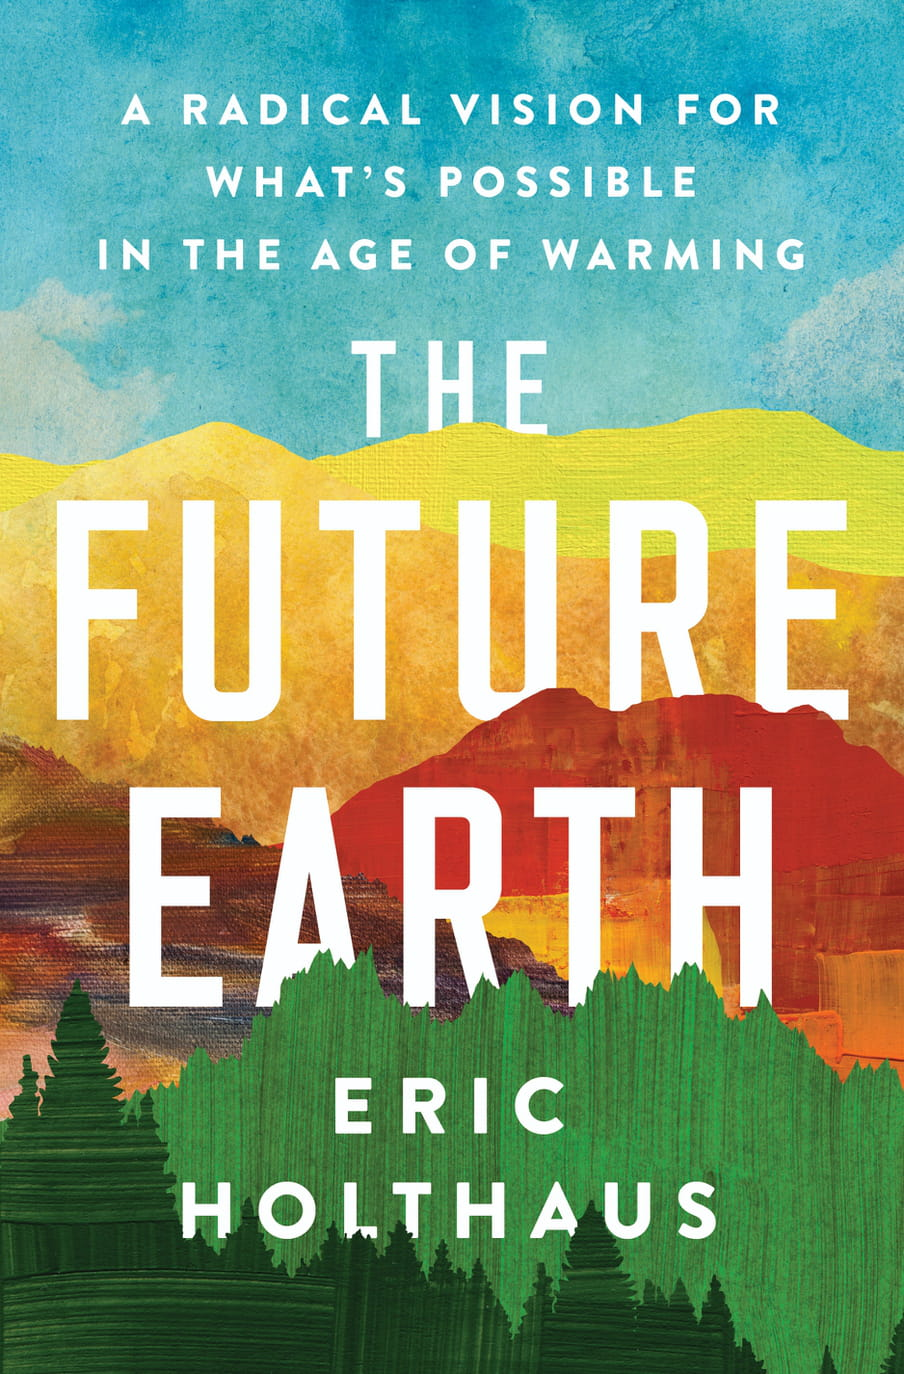 Cover of the Eric Holthaus book The Future Earth